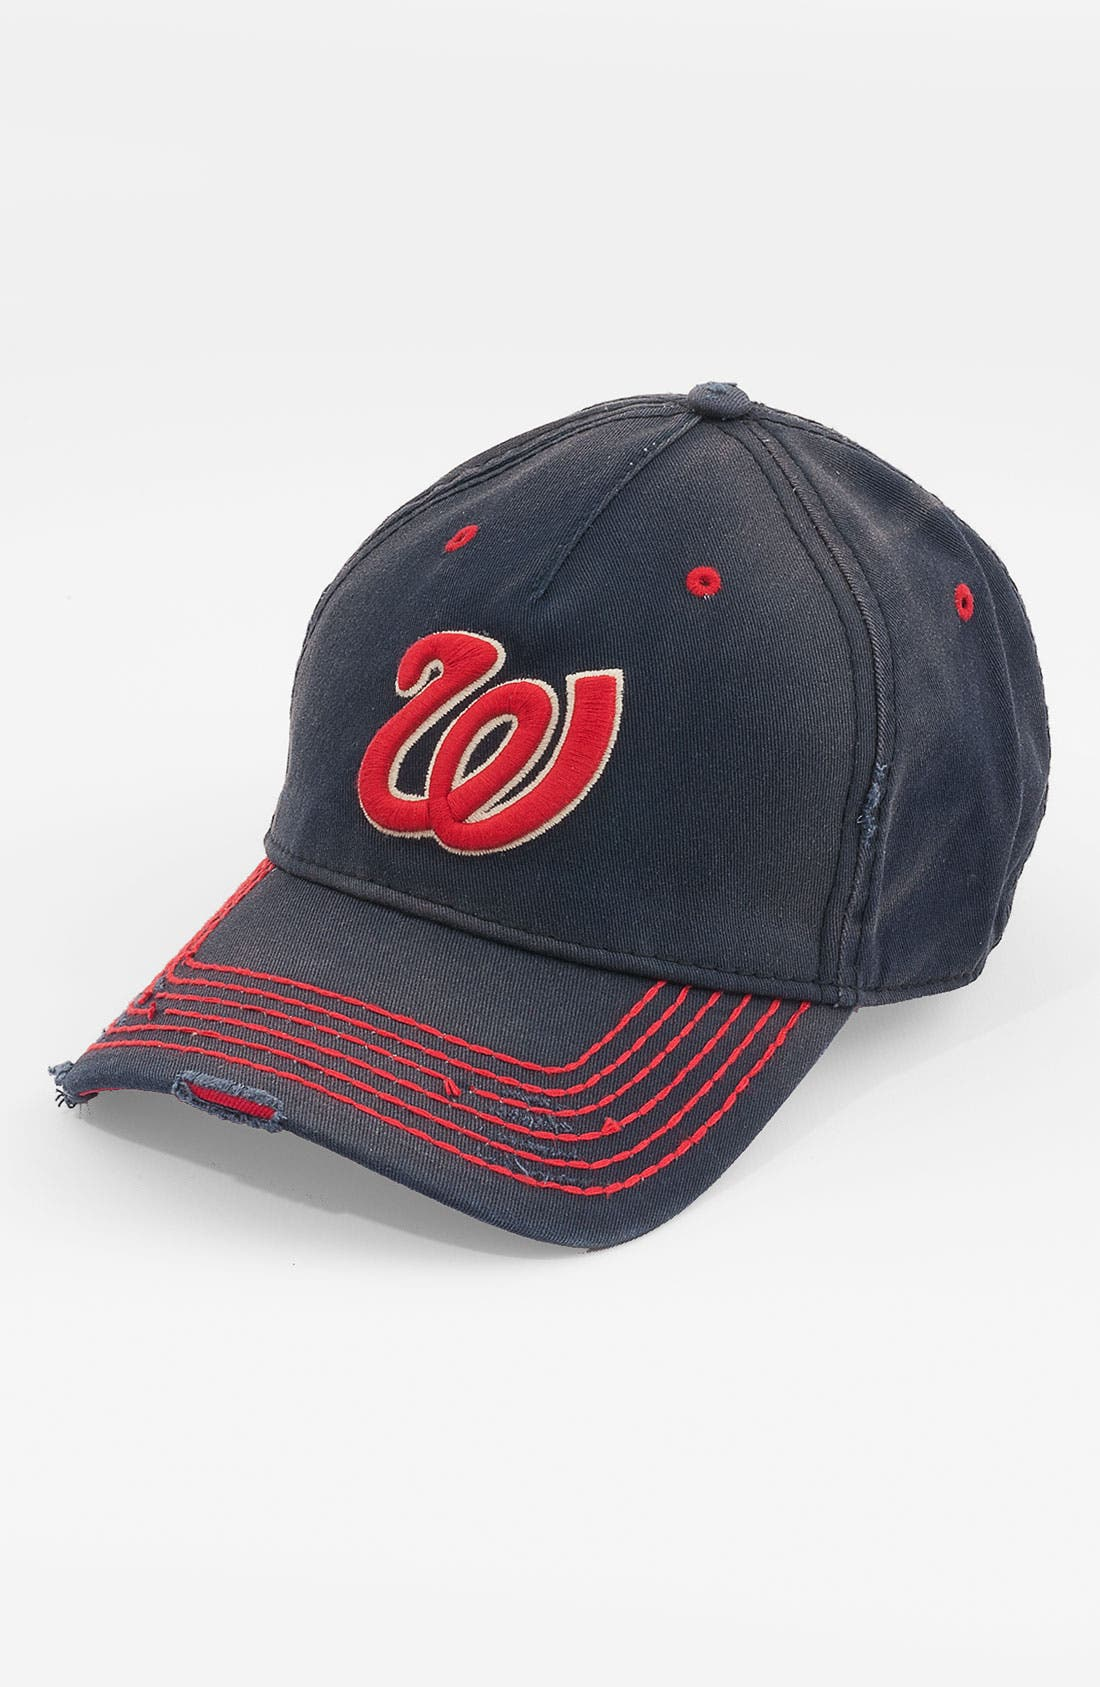 Main Image - American Needle 'Washington Senators' Baseball Cap